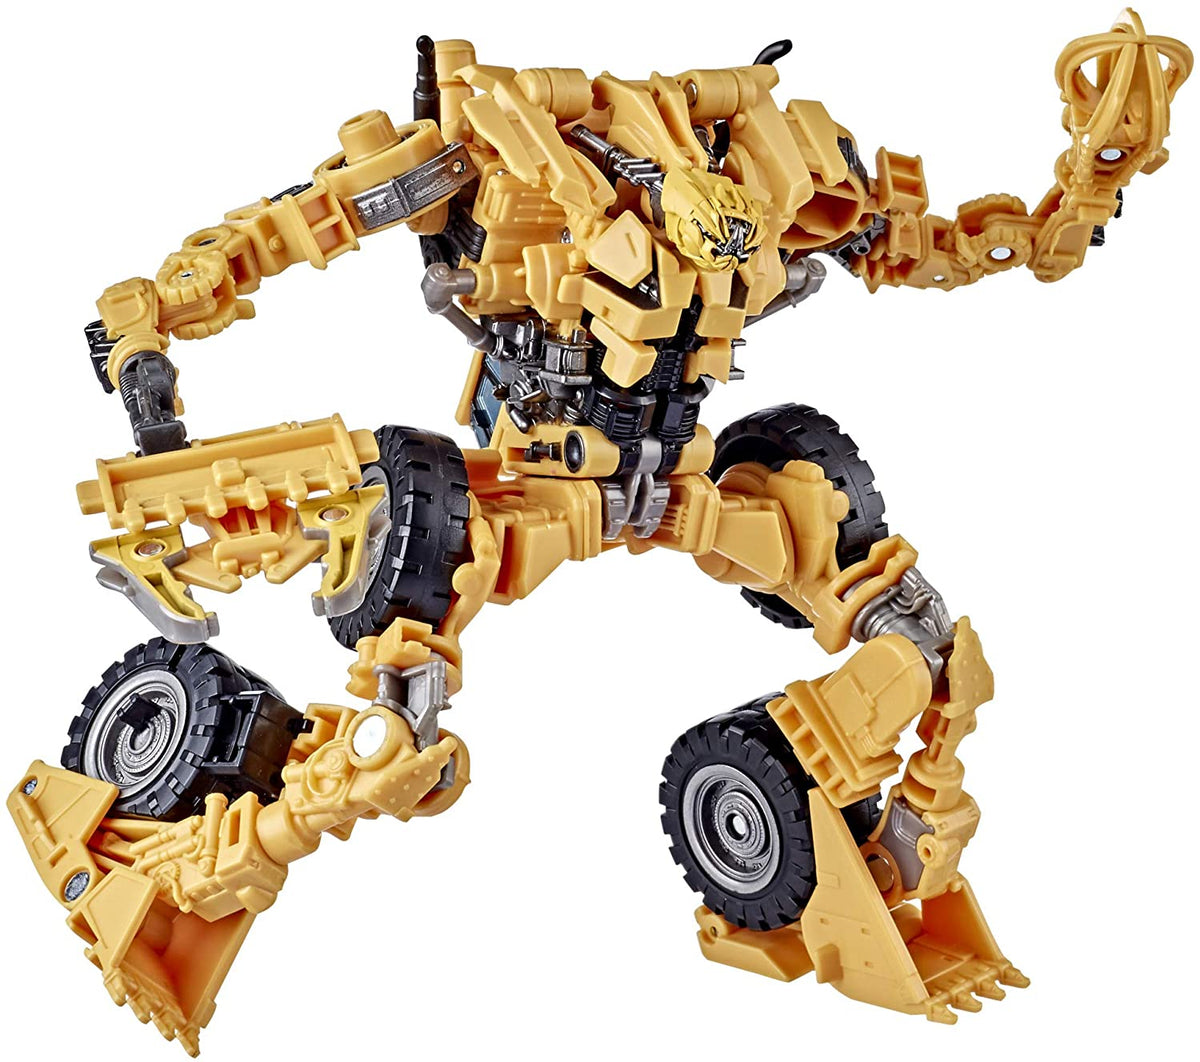 Transformers Toys Studio Series 60 Voyager Class Revenge of The Fallen Scrapper Action Figure